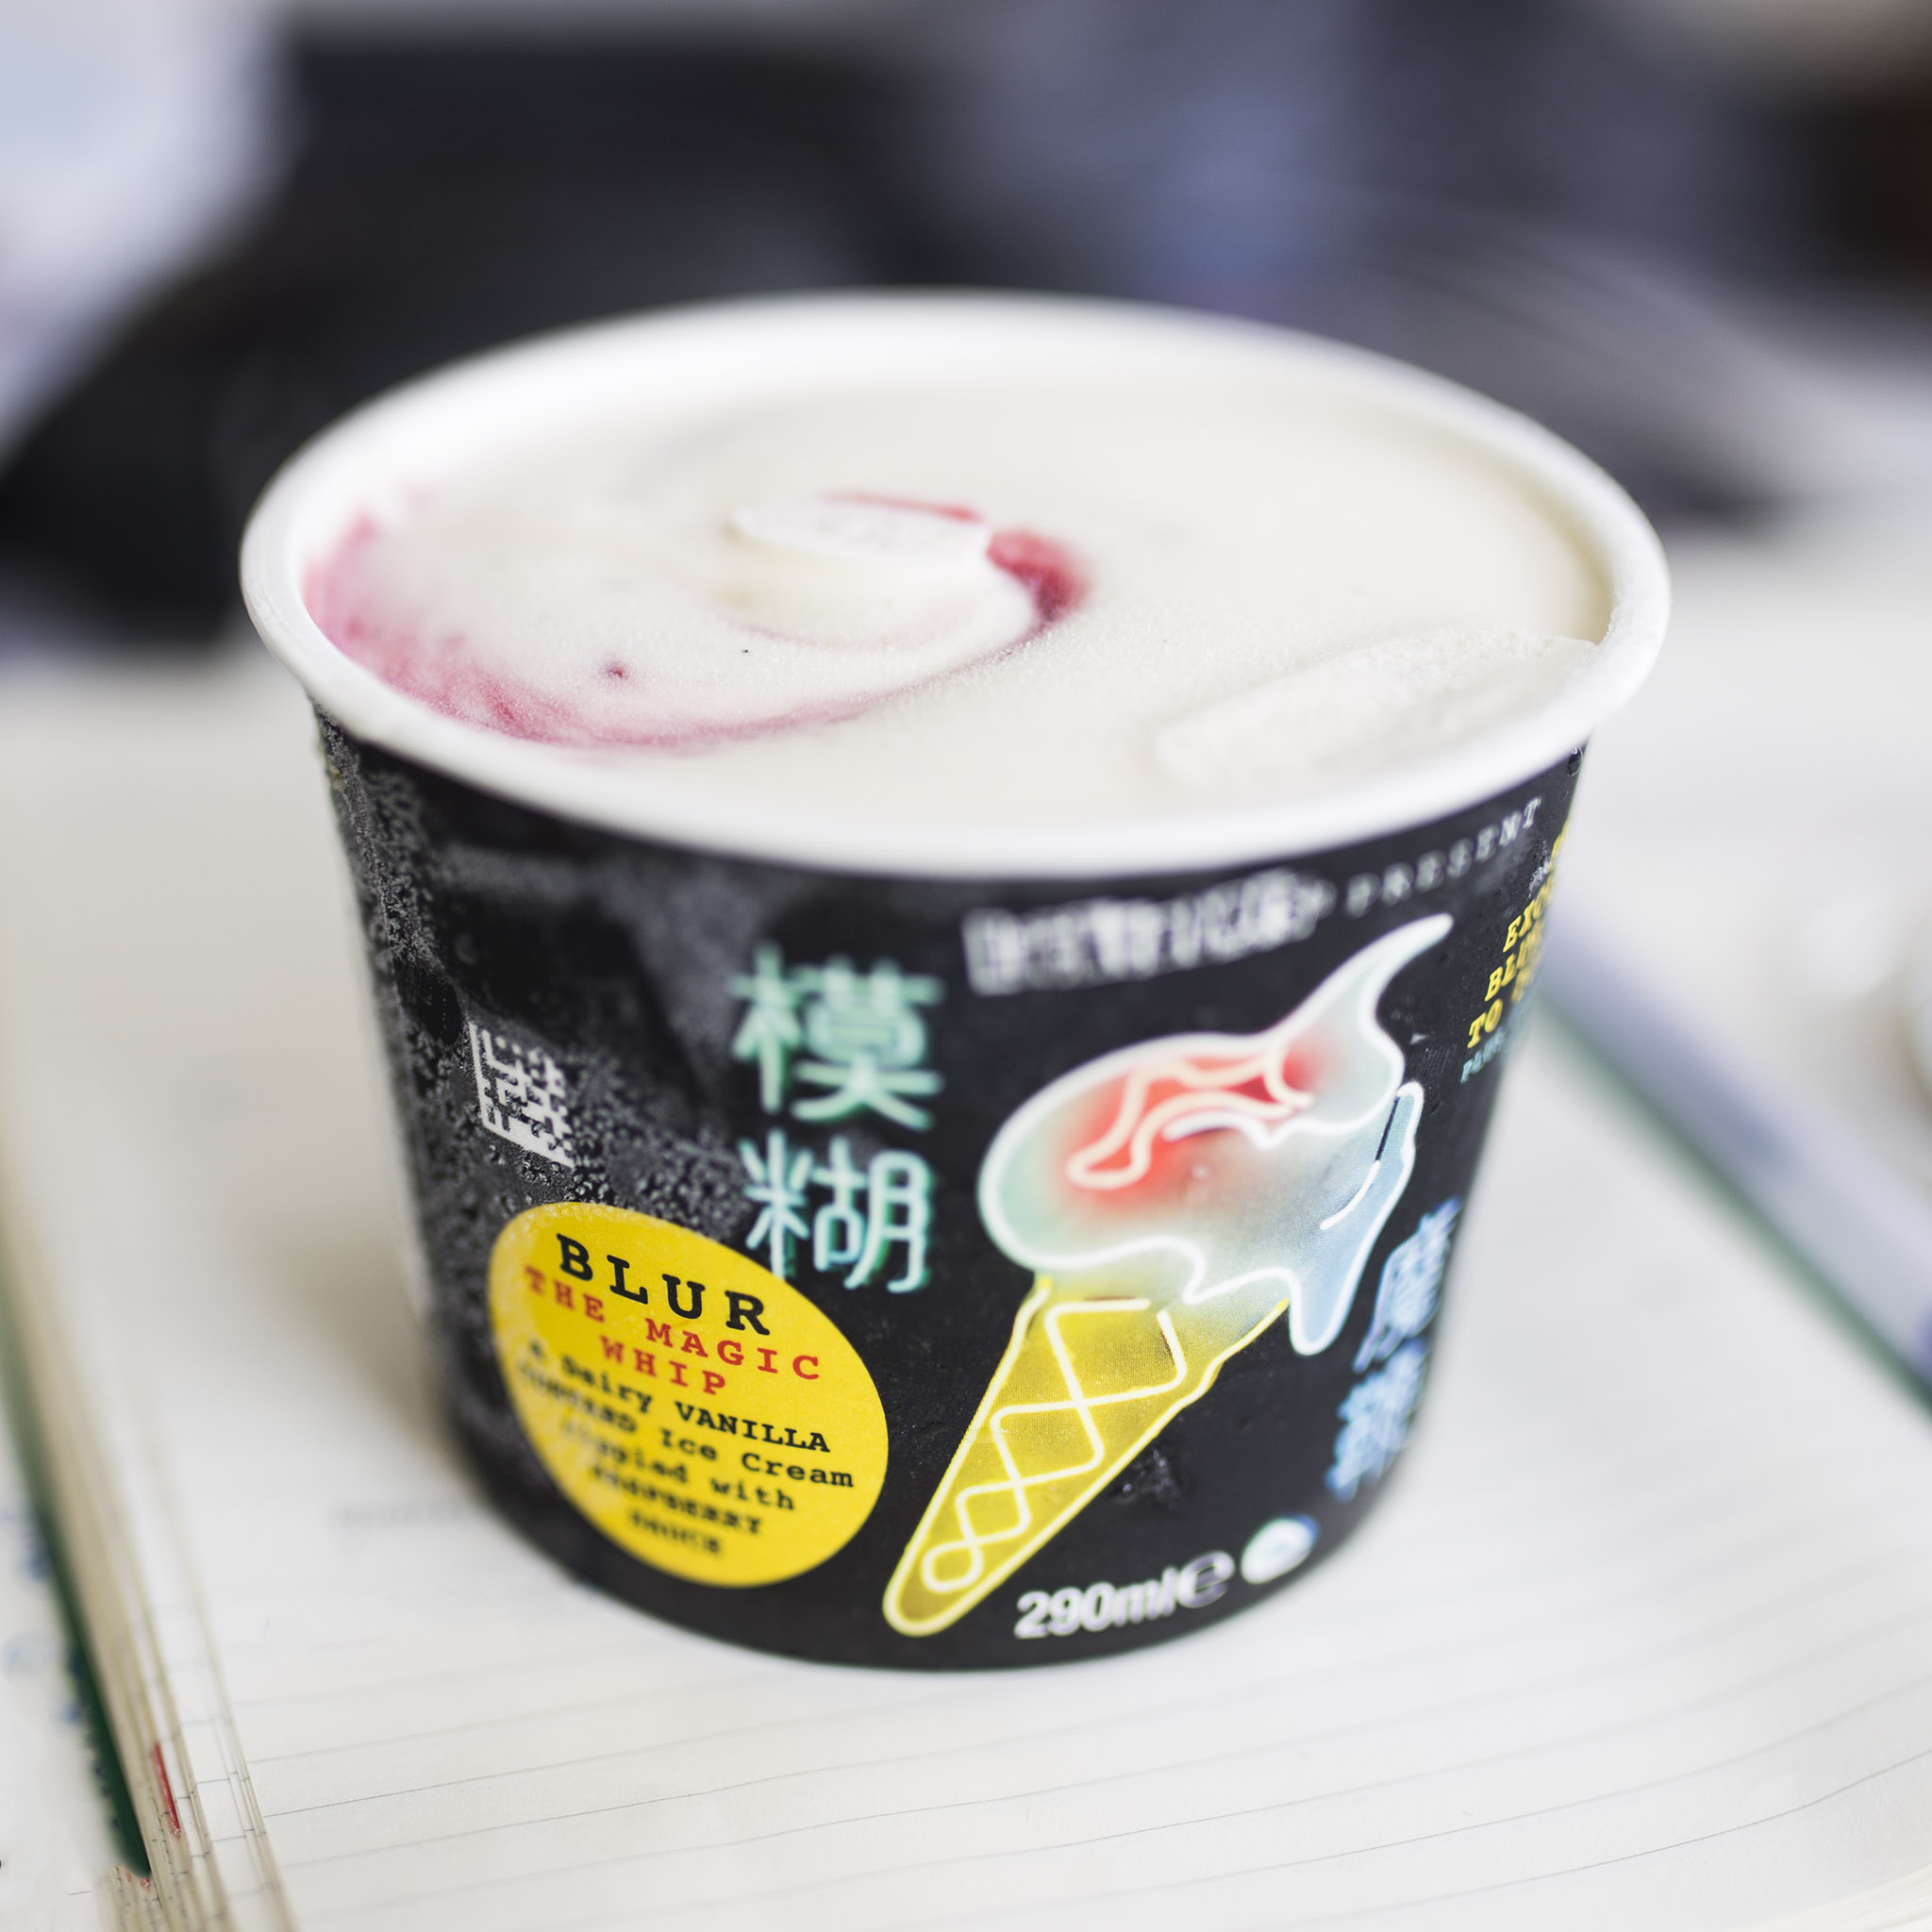 Blur dish out own ice cream in UK supermarkets